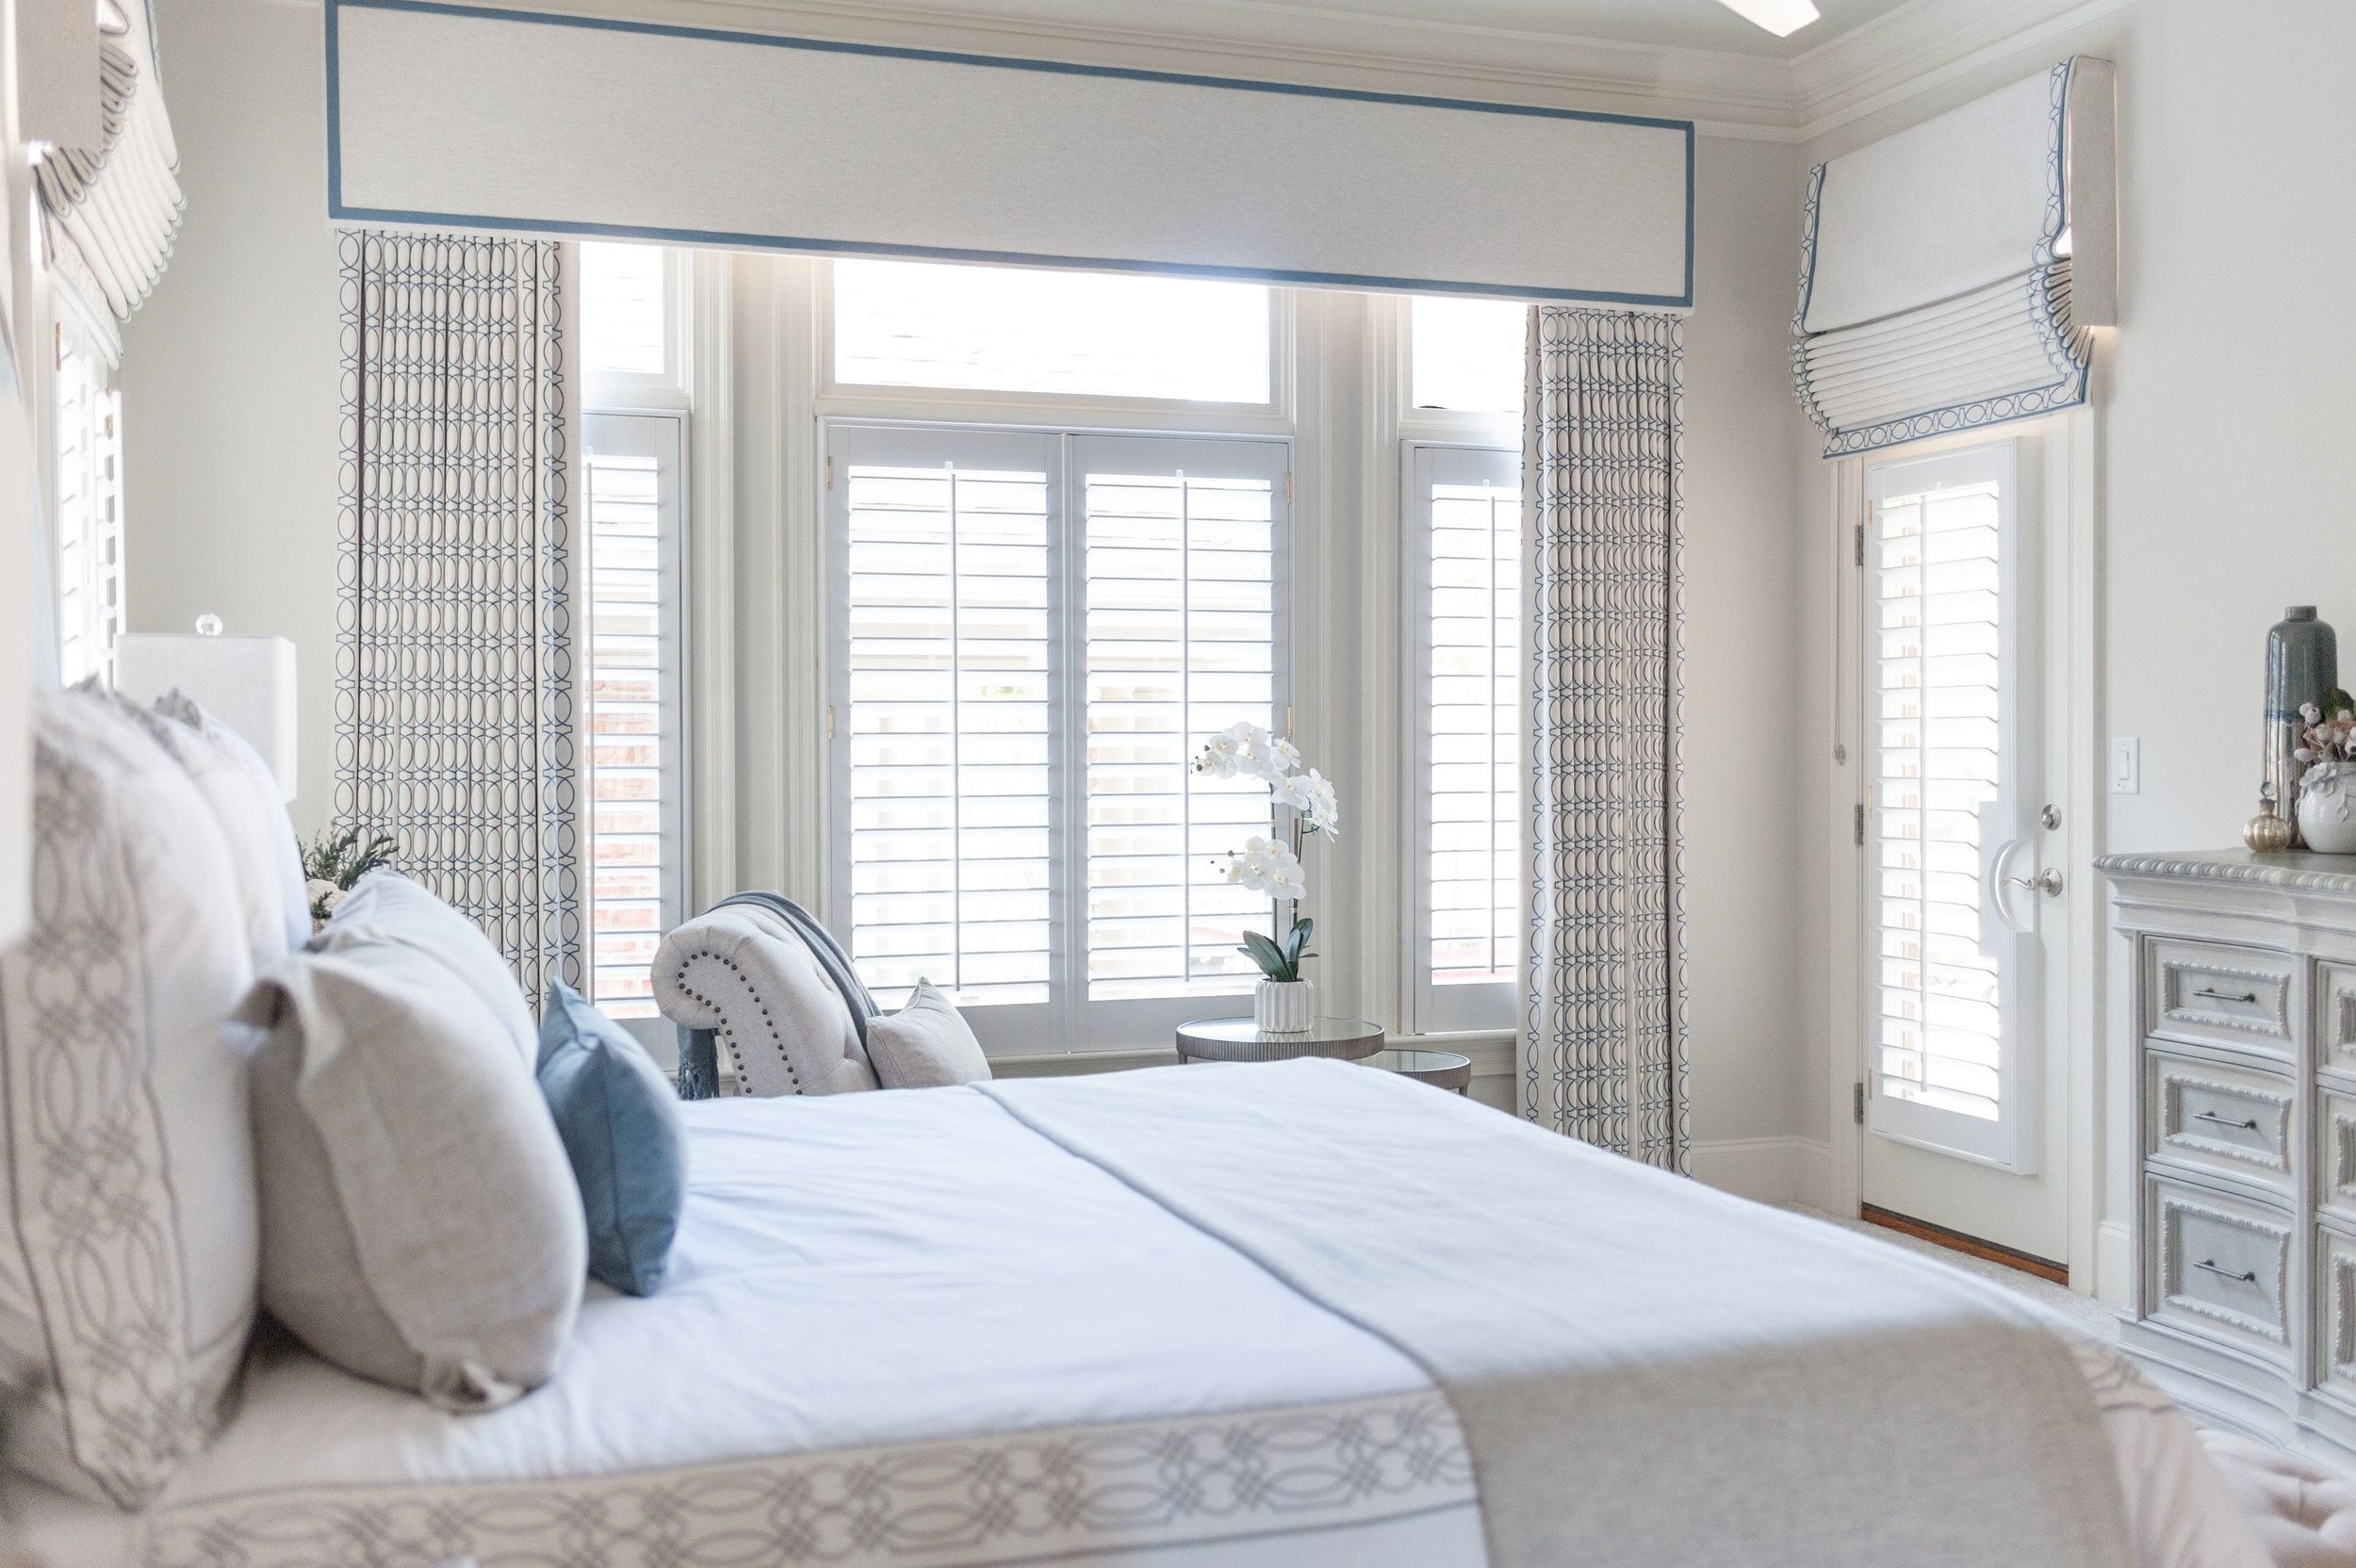 Sweet Dreams Are Made Of Beautiful Transitional Bedrooms Like This One By Sara Lynn Brenn Transitional Bedroom Design Transitional Decor Bedroom Bedroom Design Beautiful transitional master bedroom